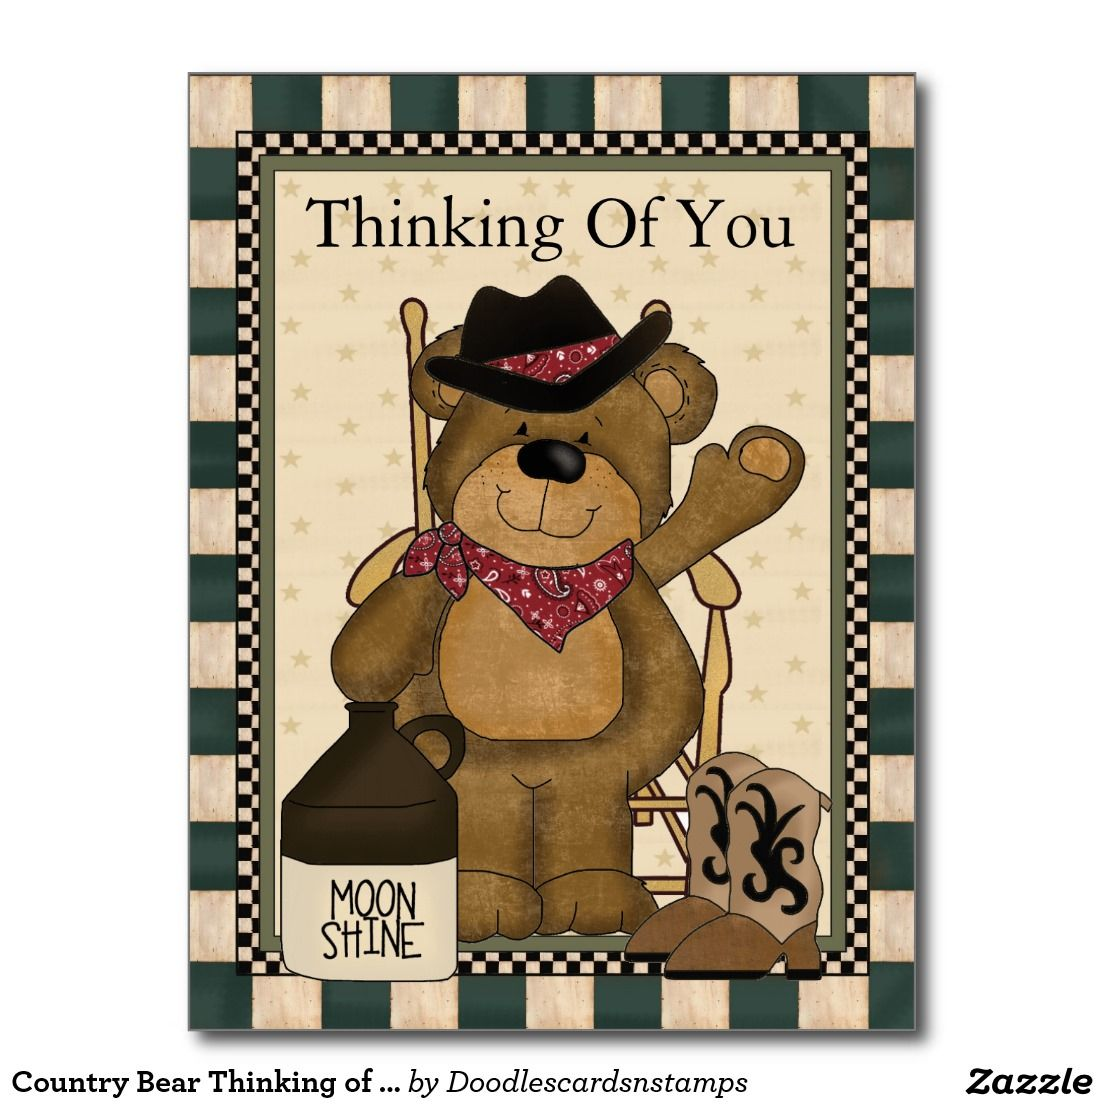 Country Bear Thinking of you postcard